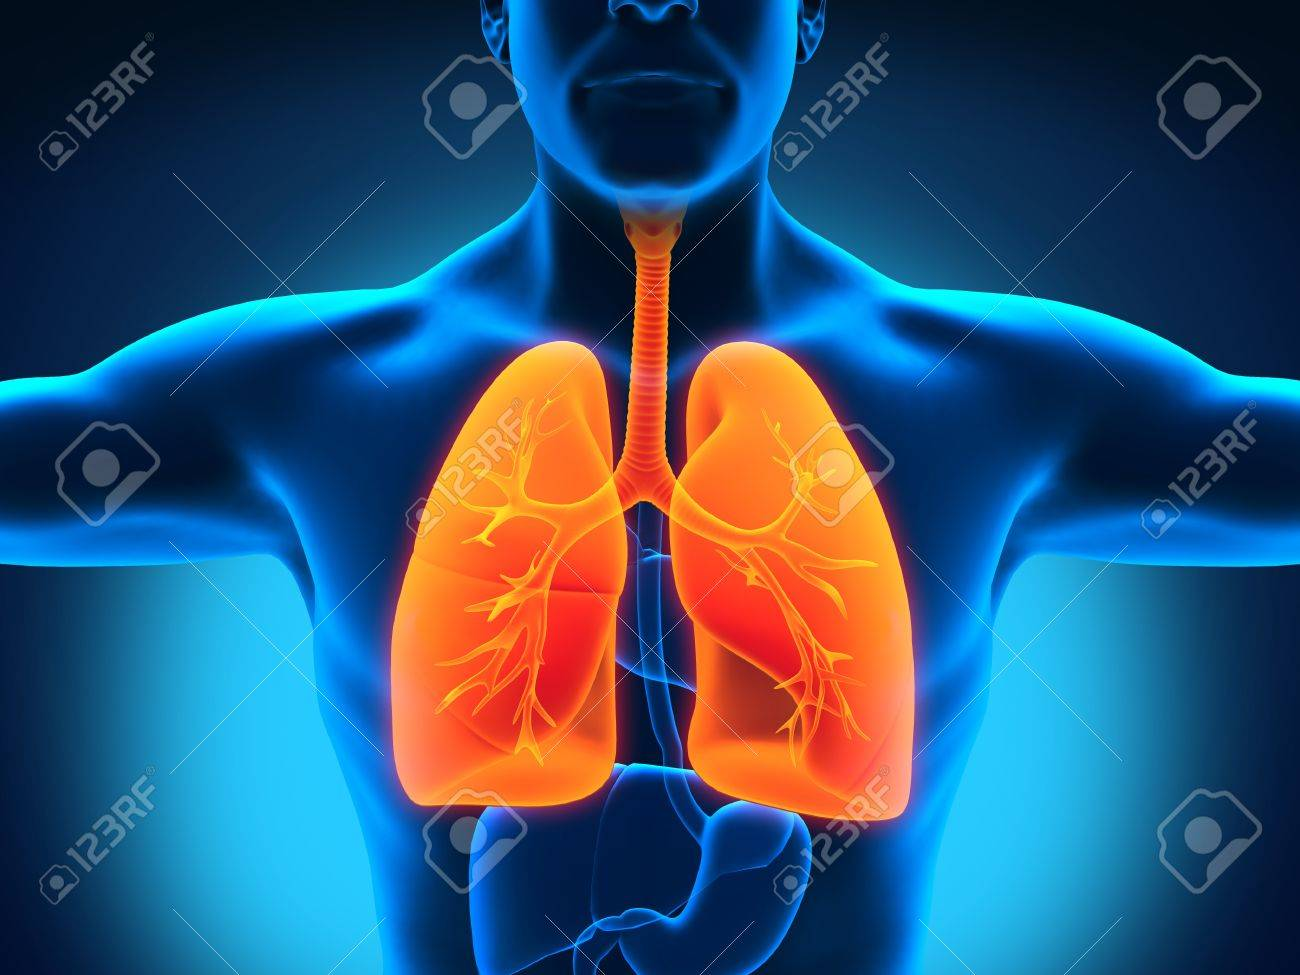 Male Anatomy Of Human Respiratory System Stock Photo Picture And